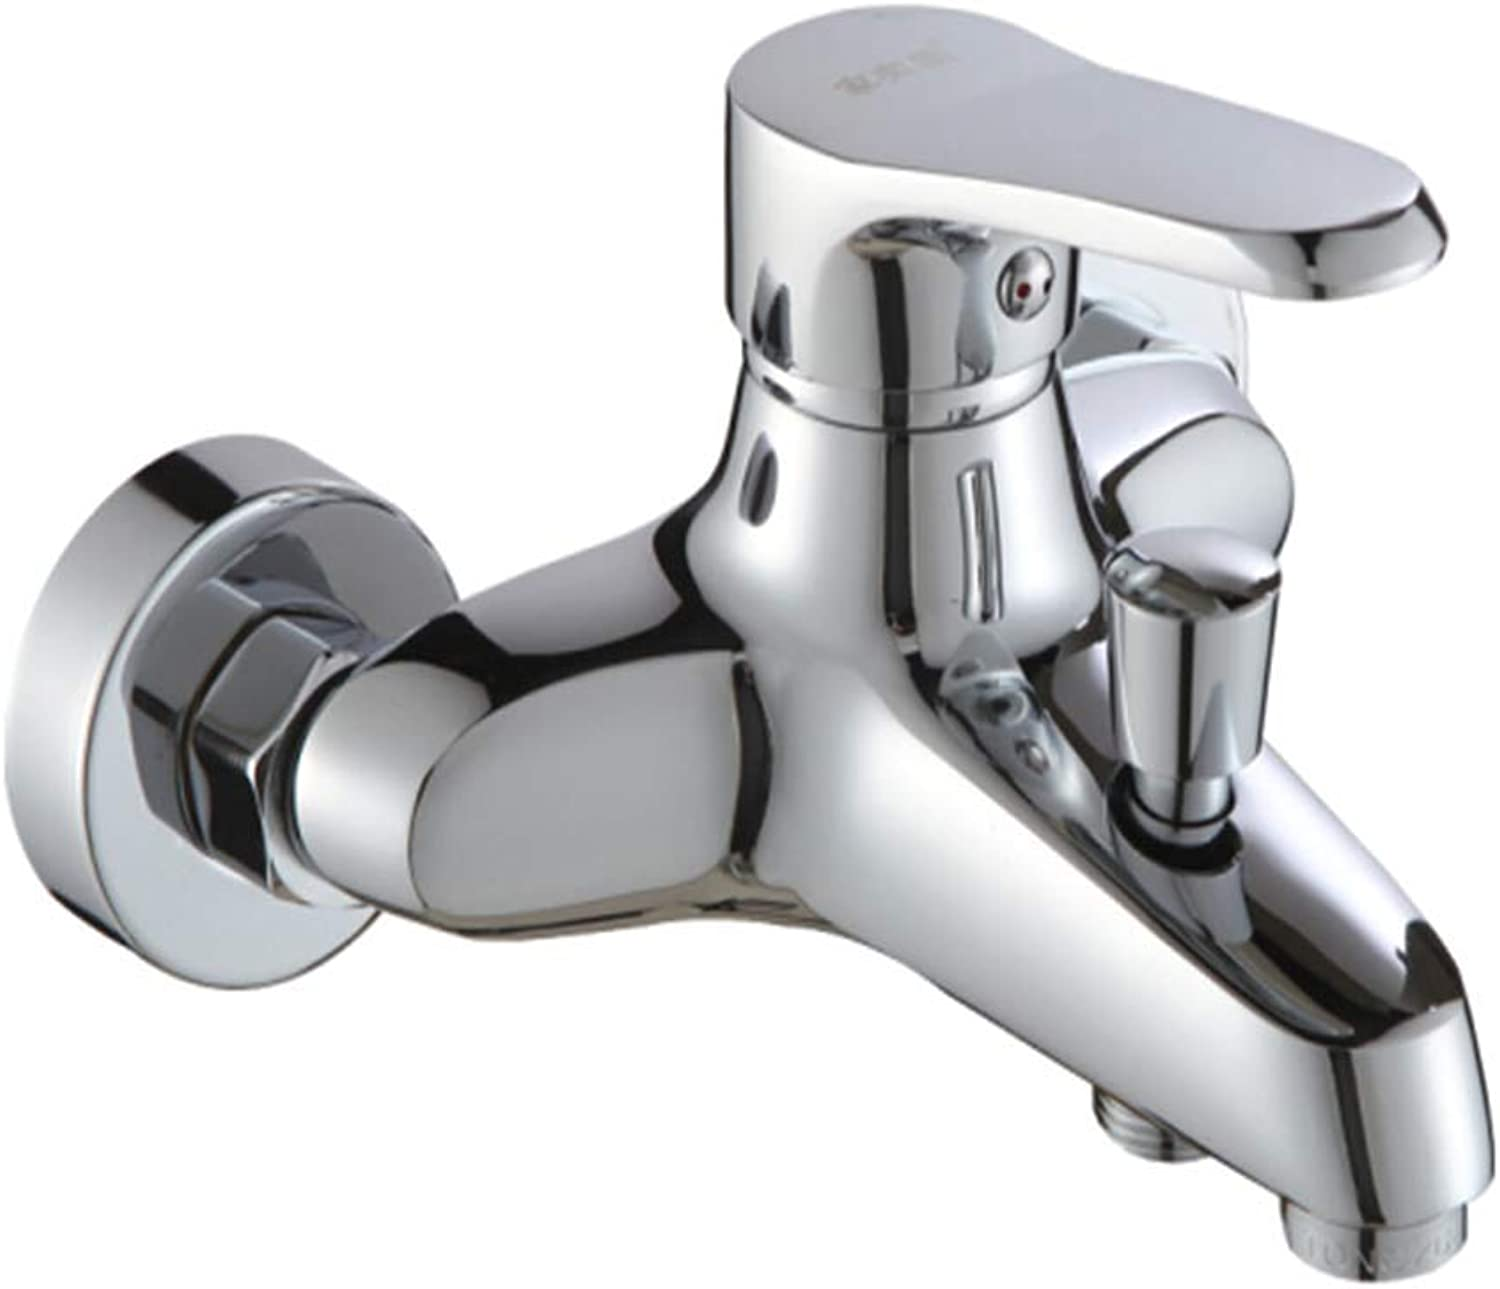 Kitchen Taps Faucet Modern Kitchen Sink Taps Stainless Steelwater Tap Cold and Hot Water Mixing Valve Copper Bathtub Tap Shower Tap